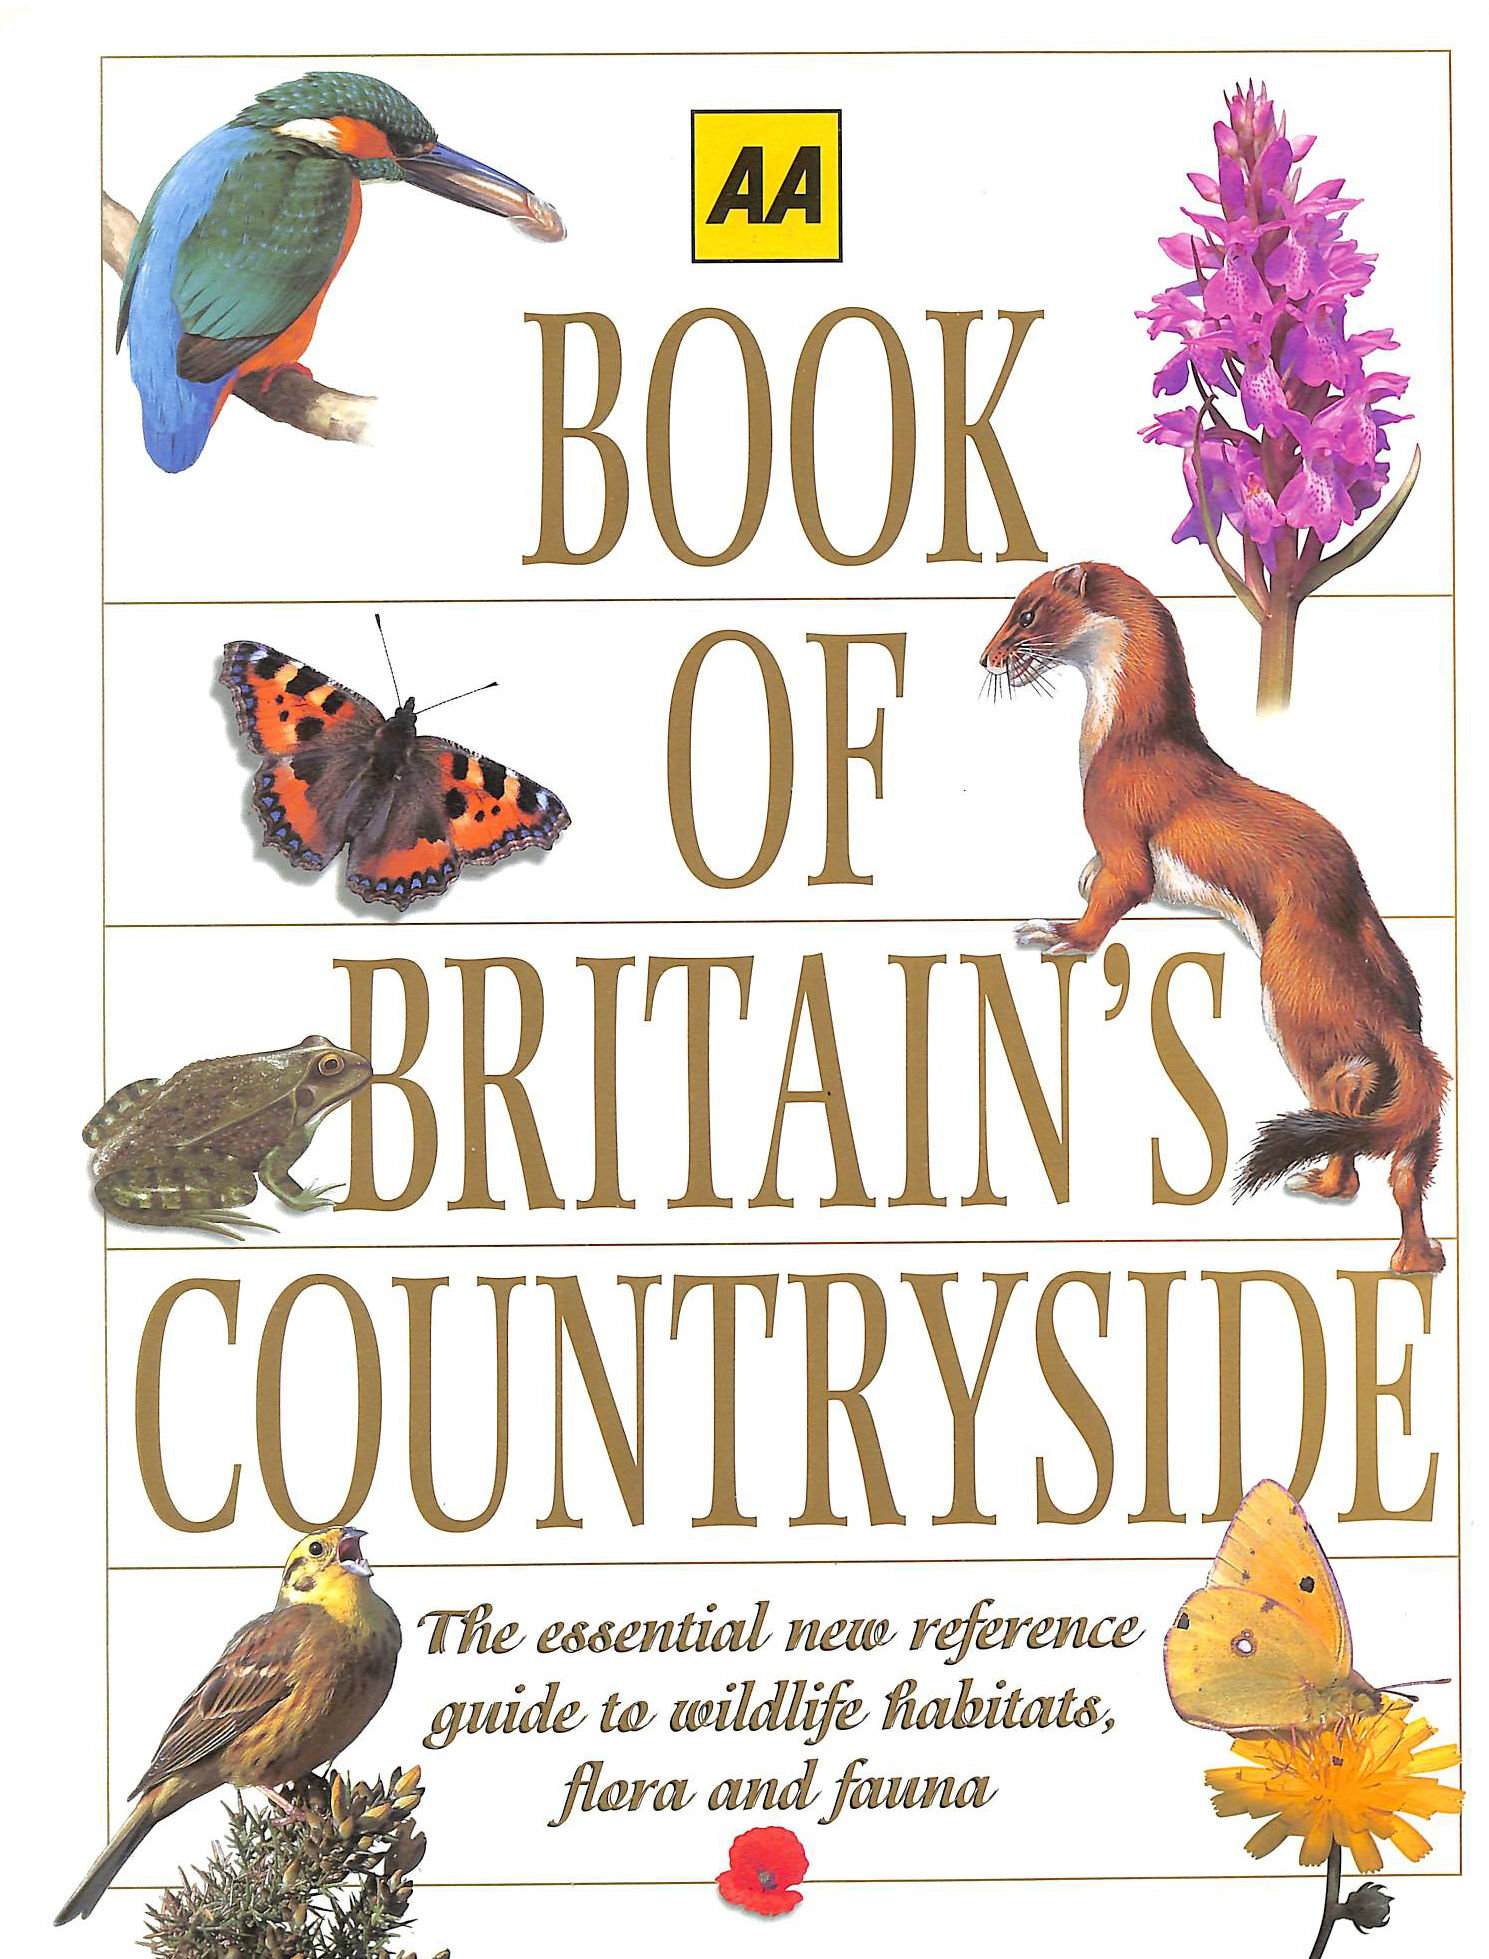 Image for AA Book of Britain's Countryside (AA Illustrated Reference Books)